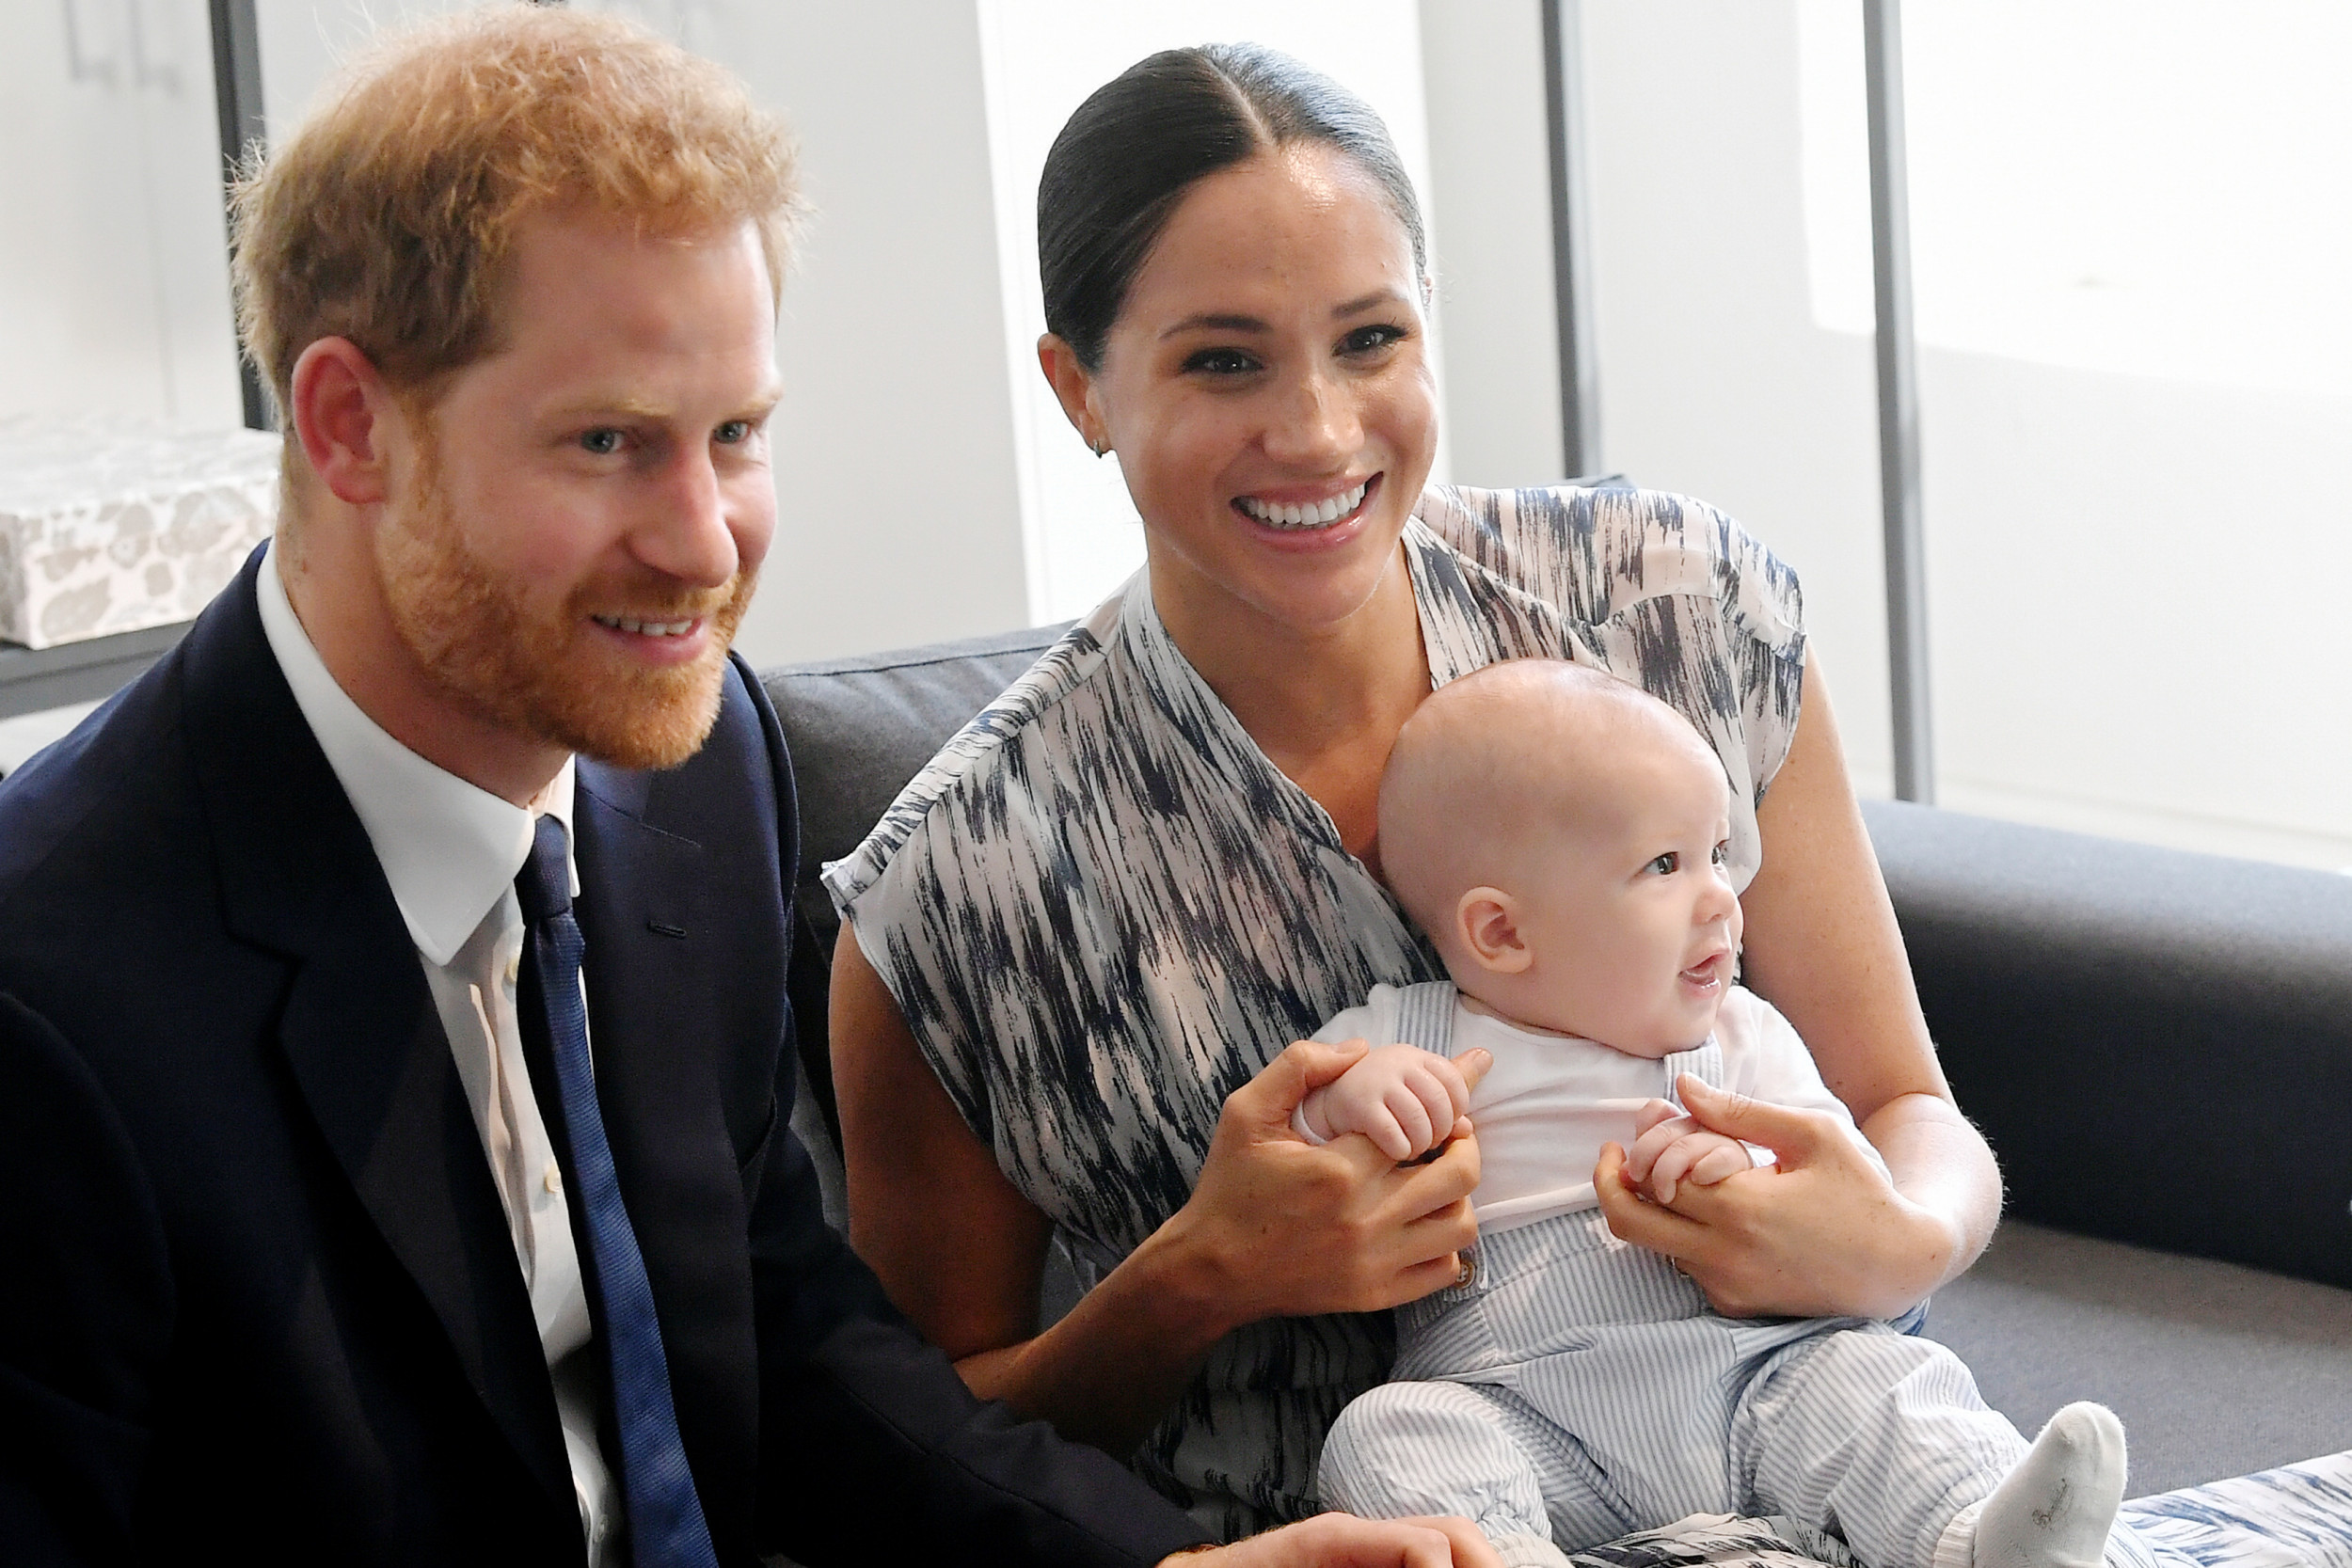 prince harry and meghan markle decline offer to name fire service plane that fought australia wildfires after archie prince harry and meghan markle decline